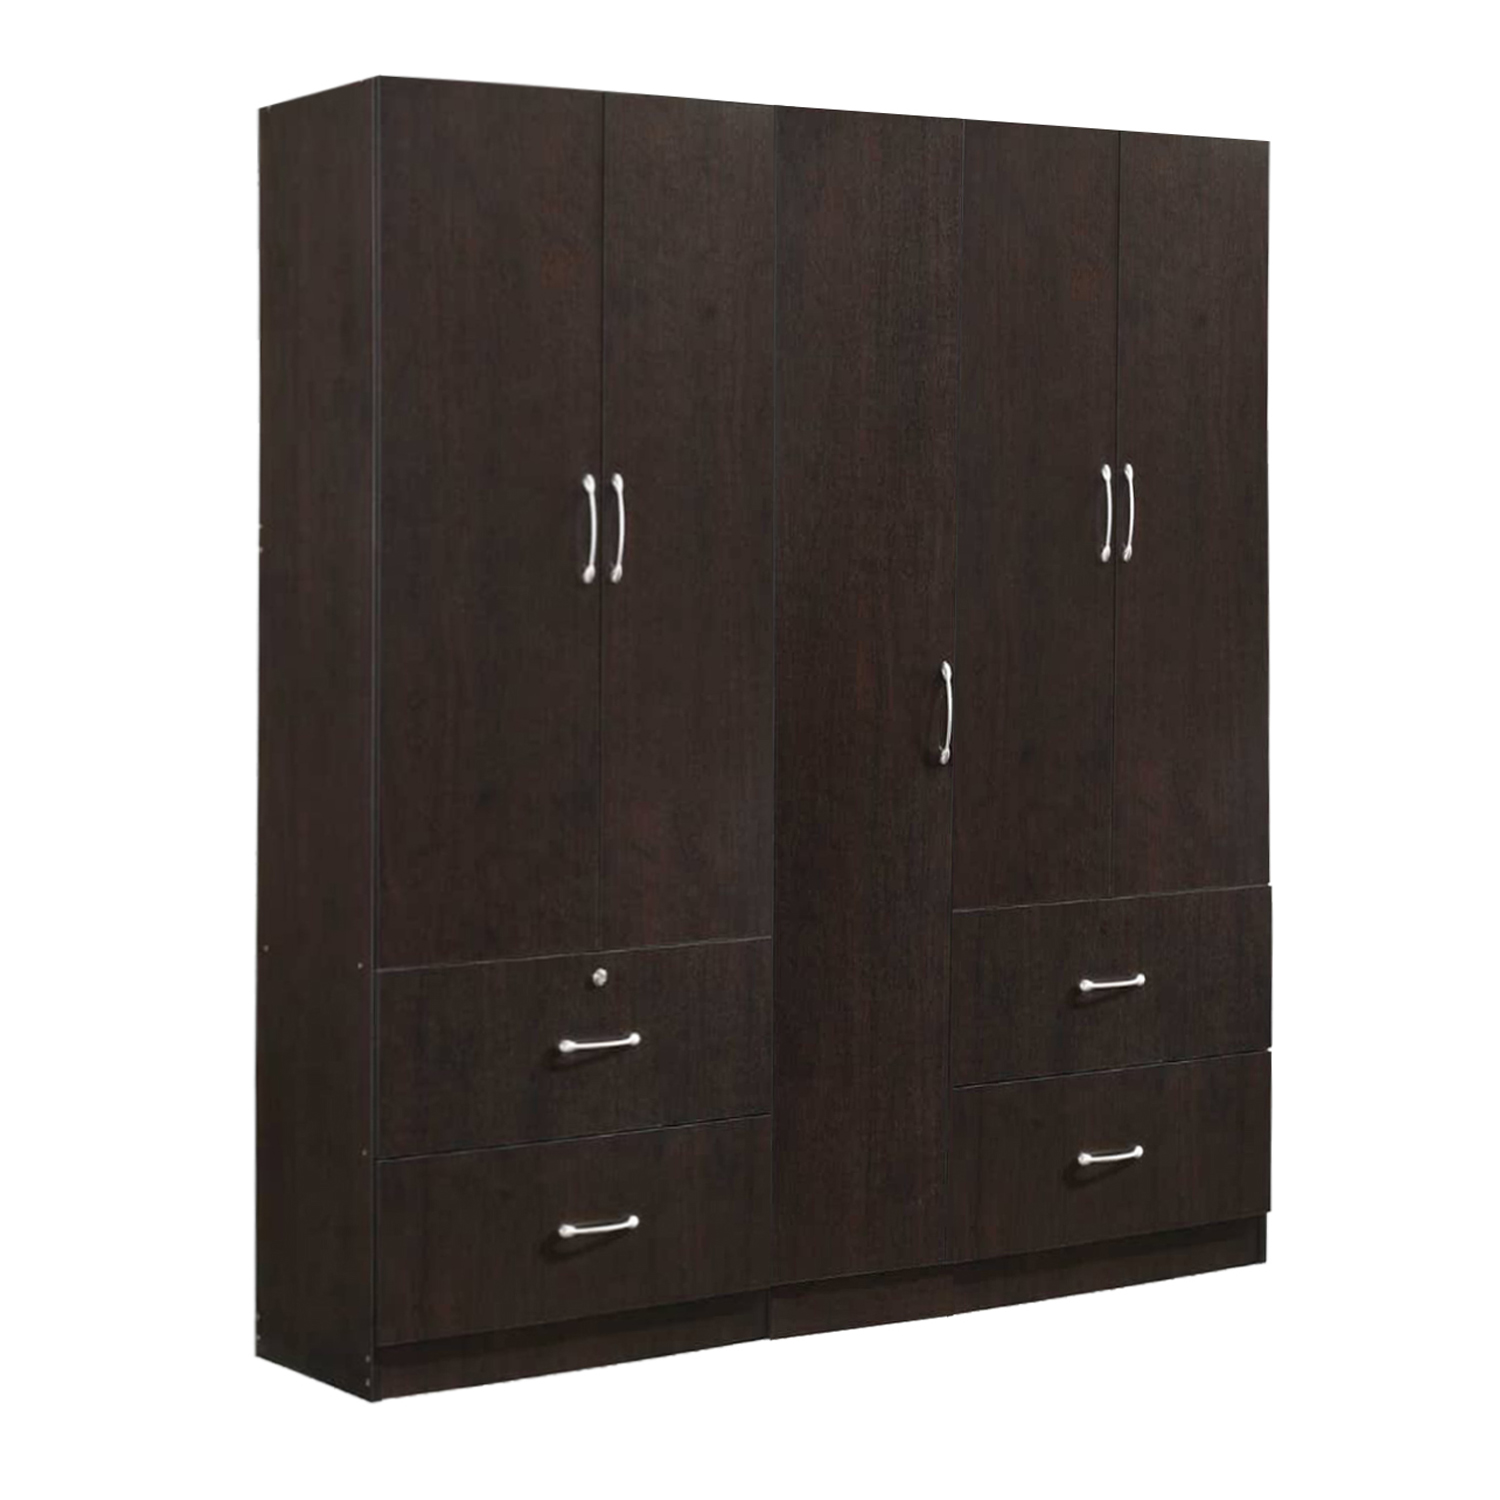 [FurnitureMartSG] Tallin-5D Wardrobe_FREE DELIVERY + FREE INSTALLATION